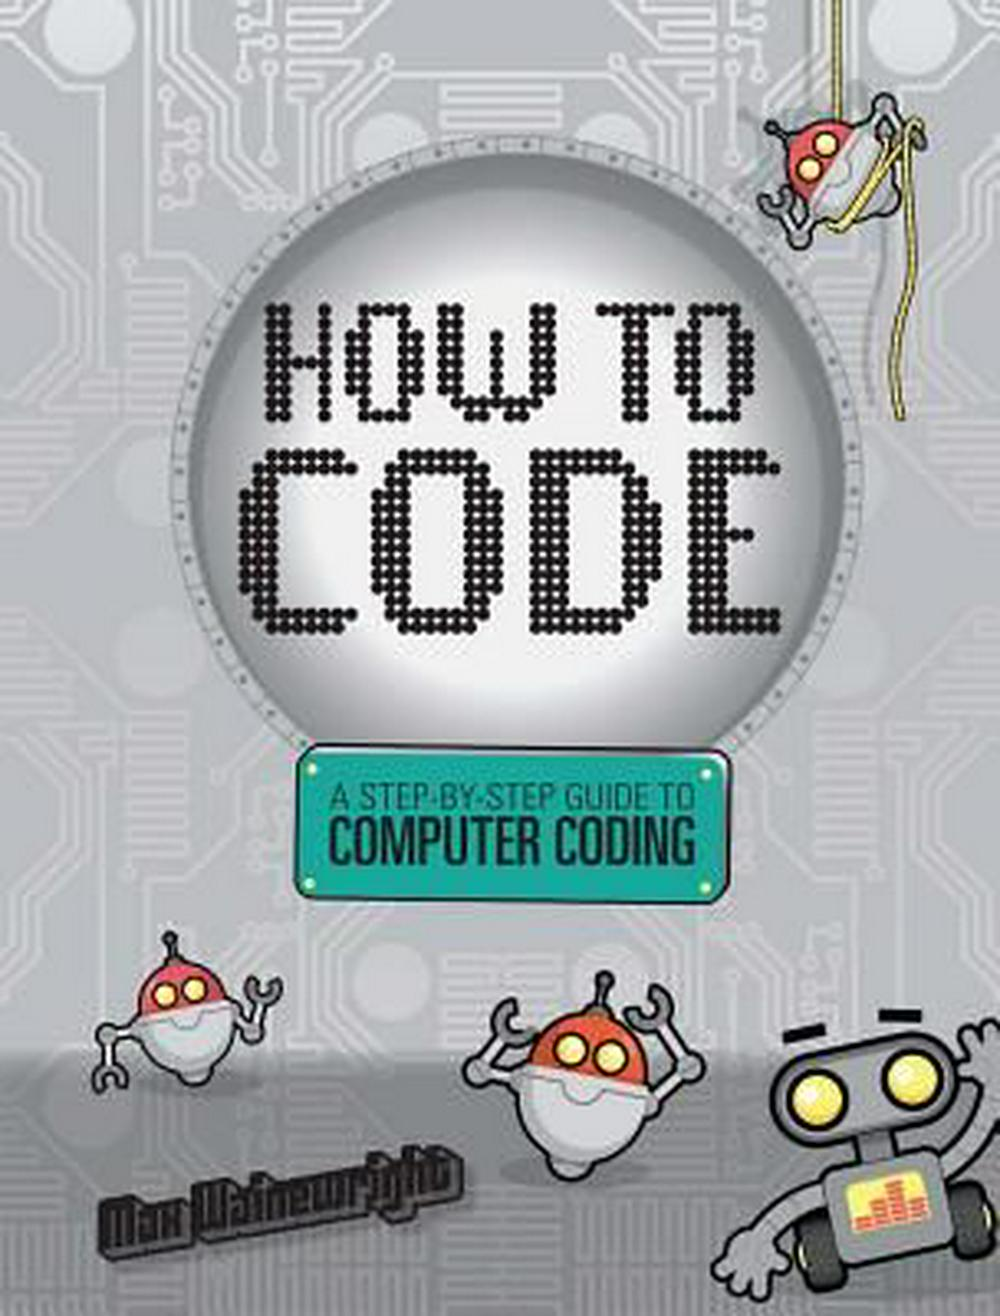 How to Code: A Step-By-Step Guide to Computer Coding by Max Wainewright, ISBN: 9781454921776